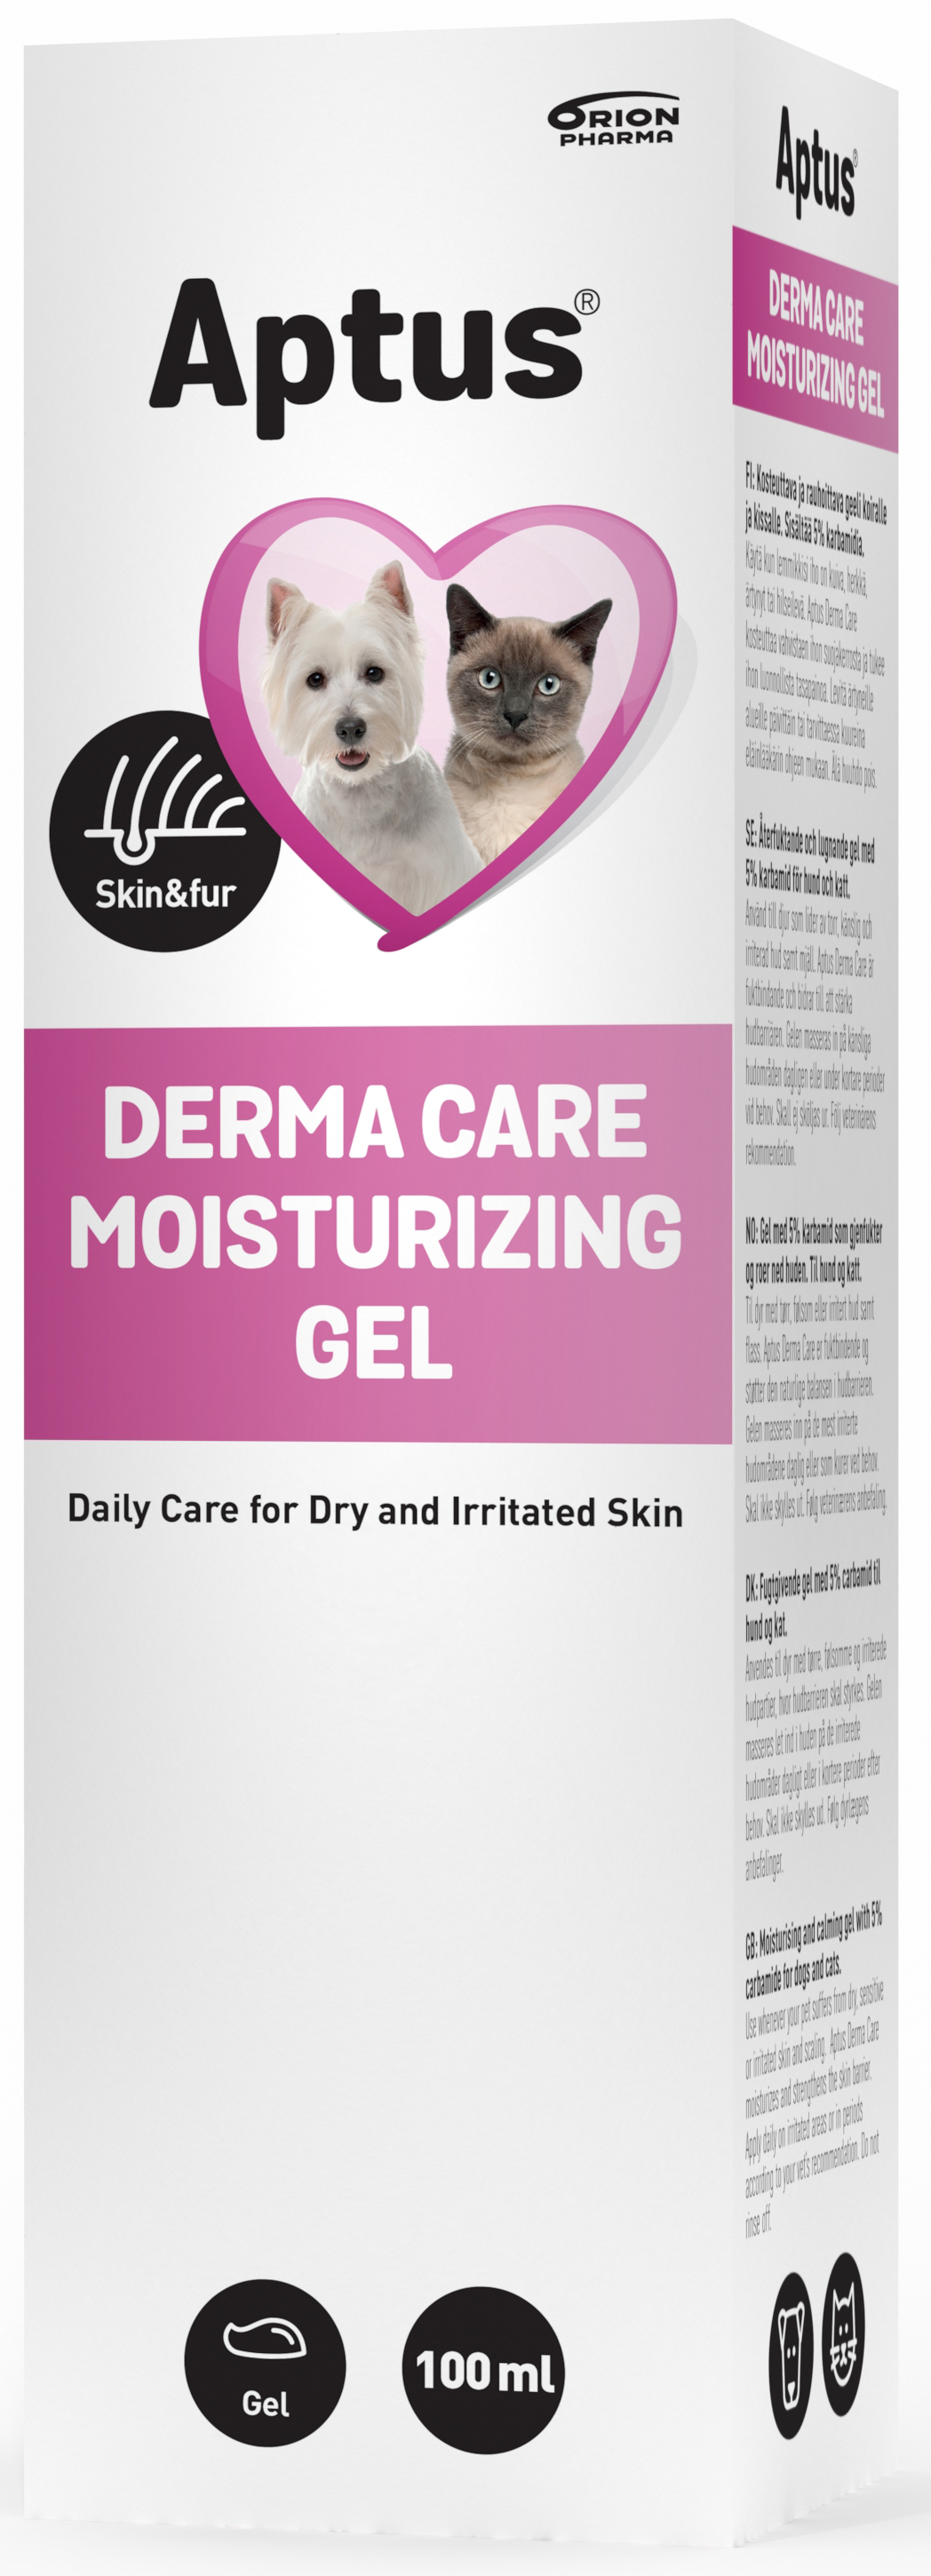 Aptus Derma Care Moisturizing Gel